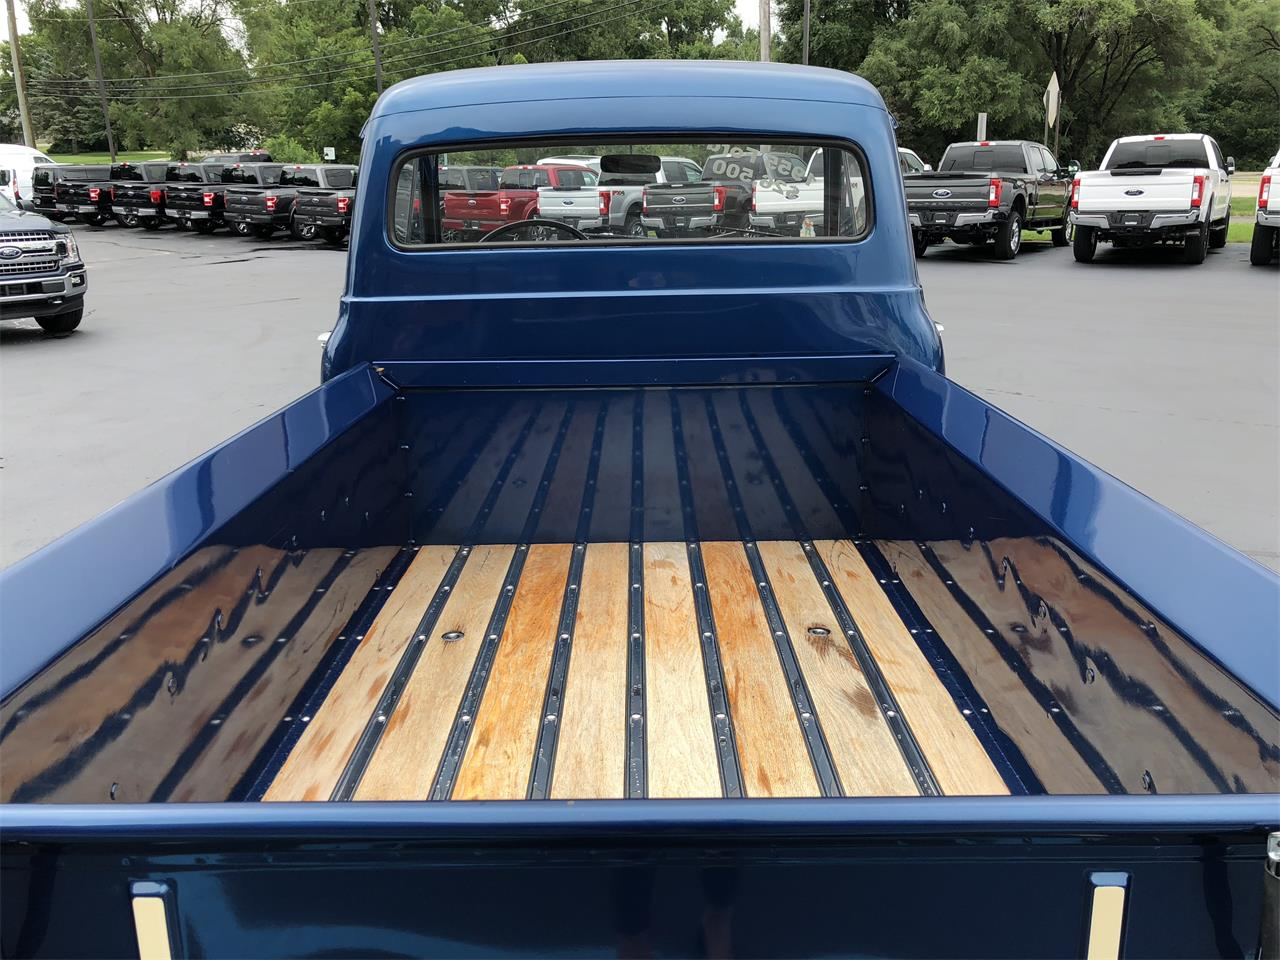 1955 Ford F100 For Sale Cc 1134784 Side Large Picture Of Classic Offered By A Private Seller Obls